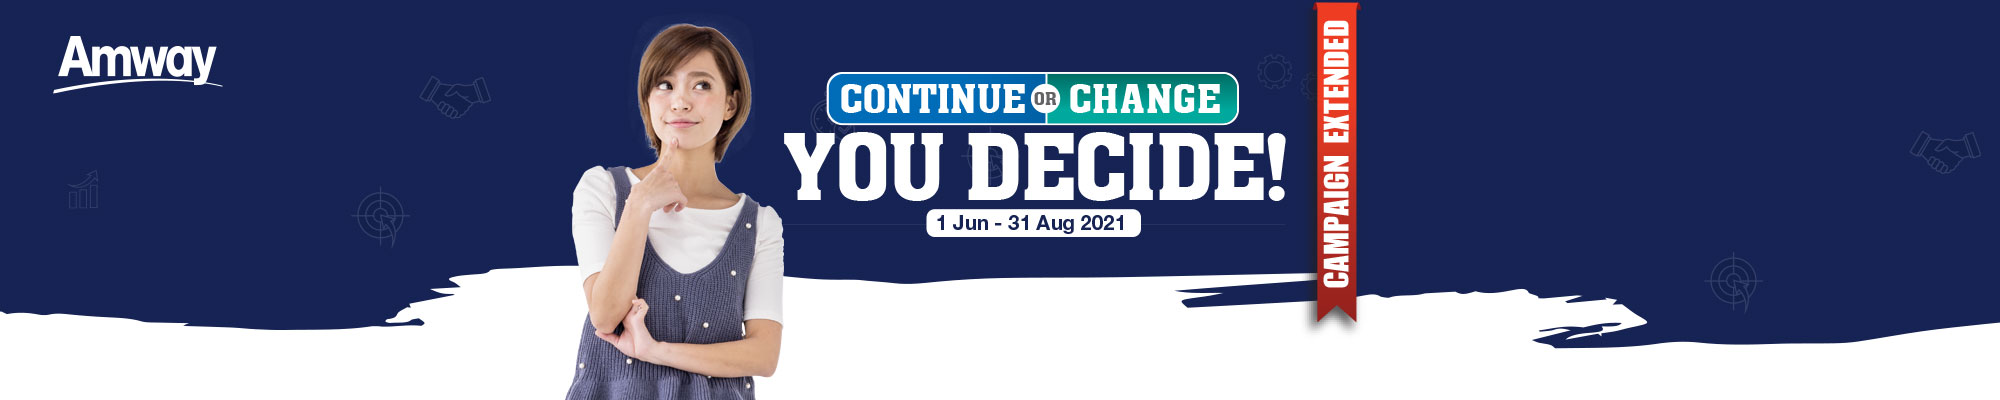 Campaign Extended: Continue or Change You Decide!